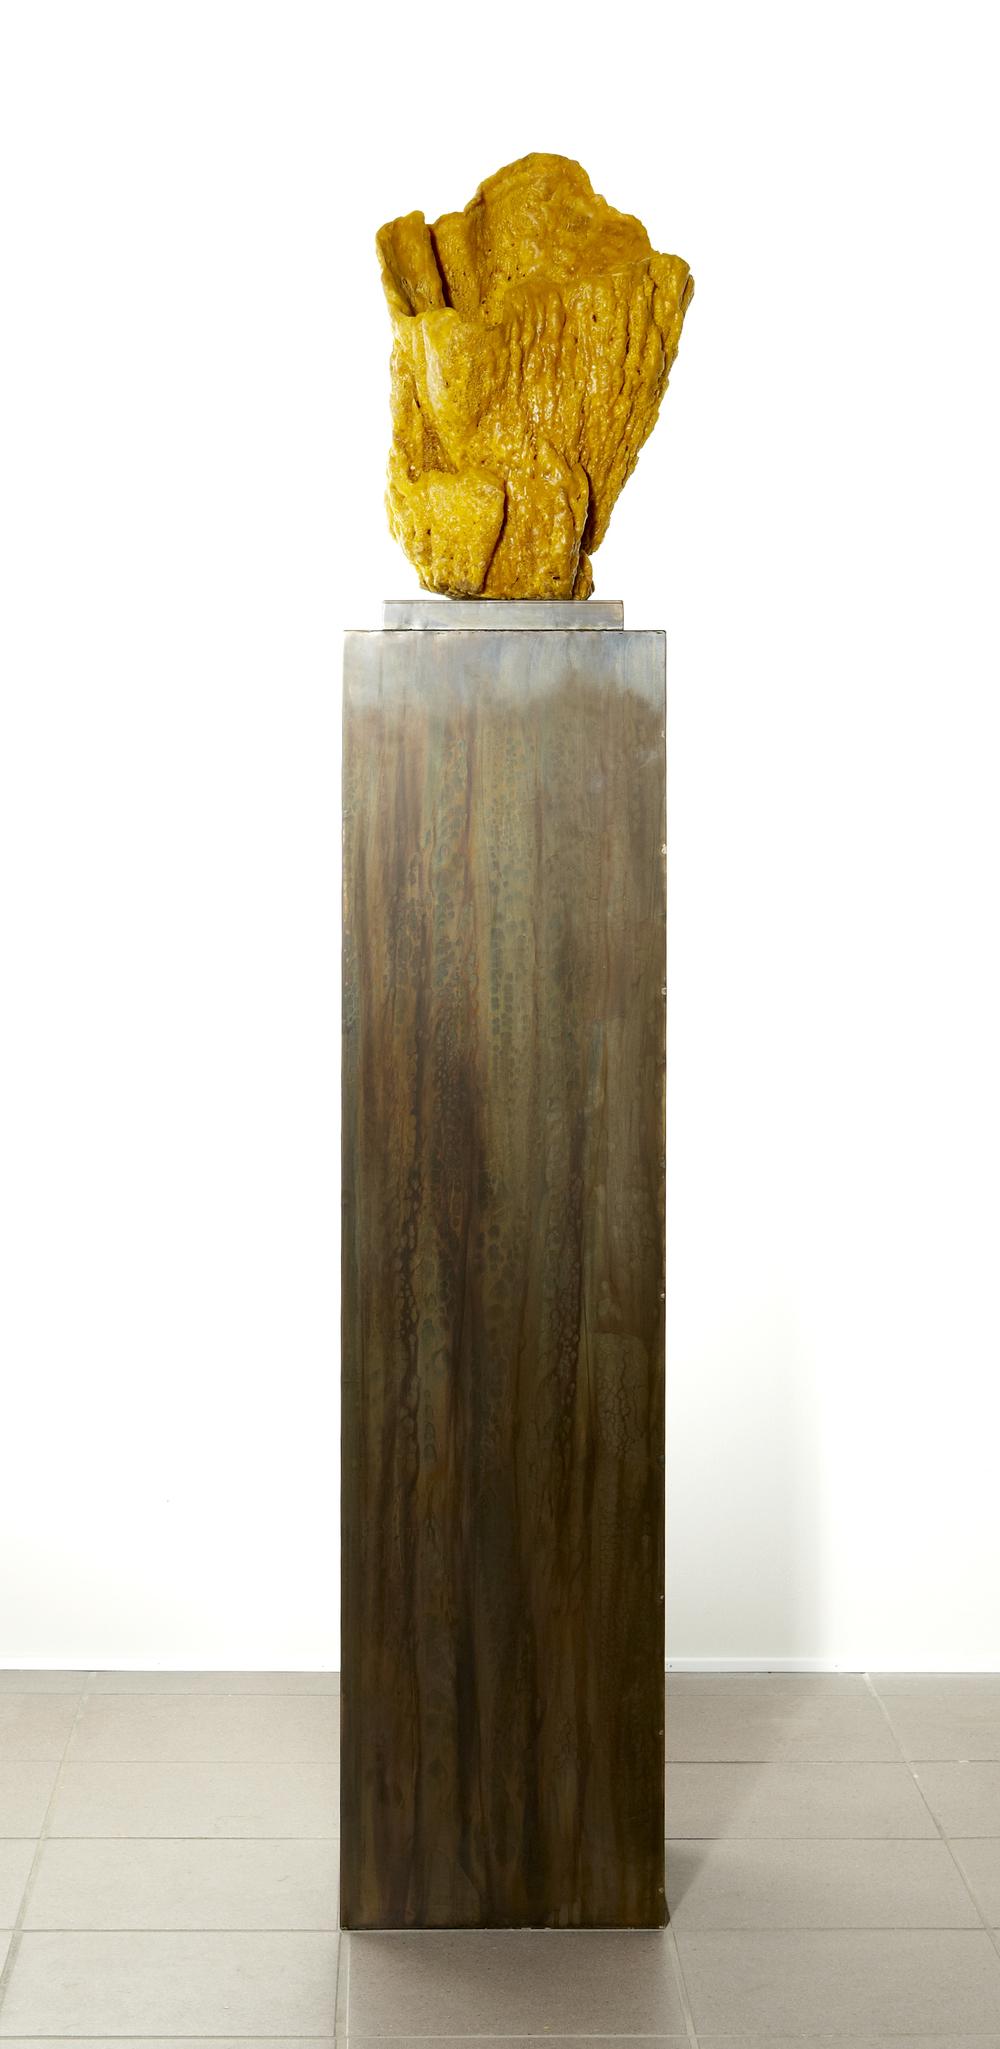 Nick Theobald. Beacon, 2014, beeswax, sea sponge and steel, 31 cm x 31 cm x 170 cm